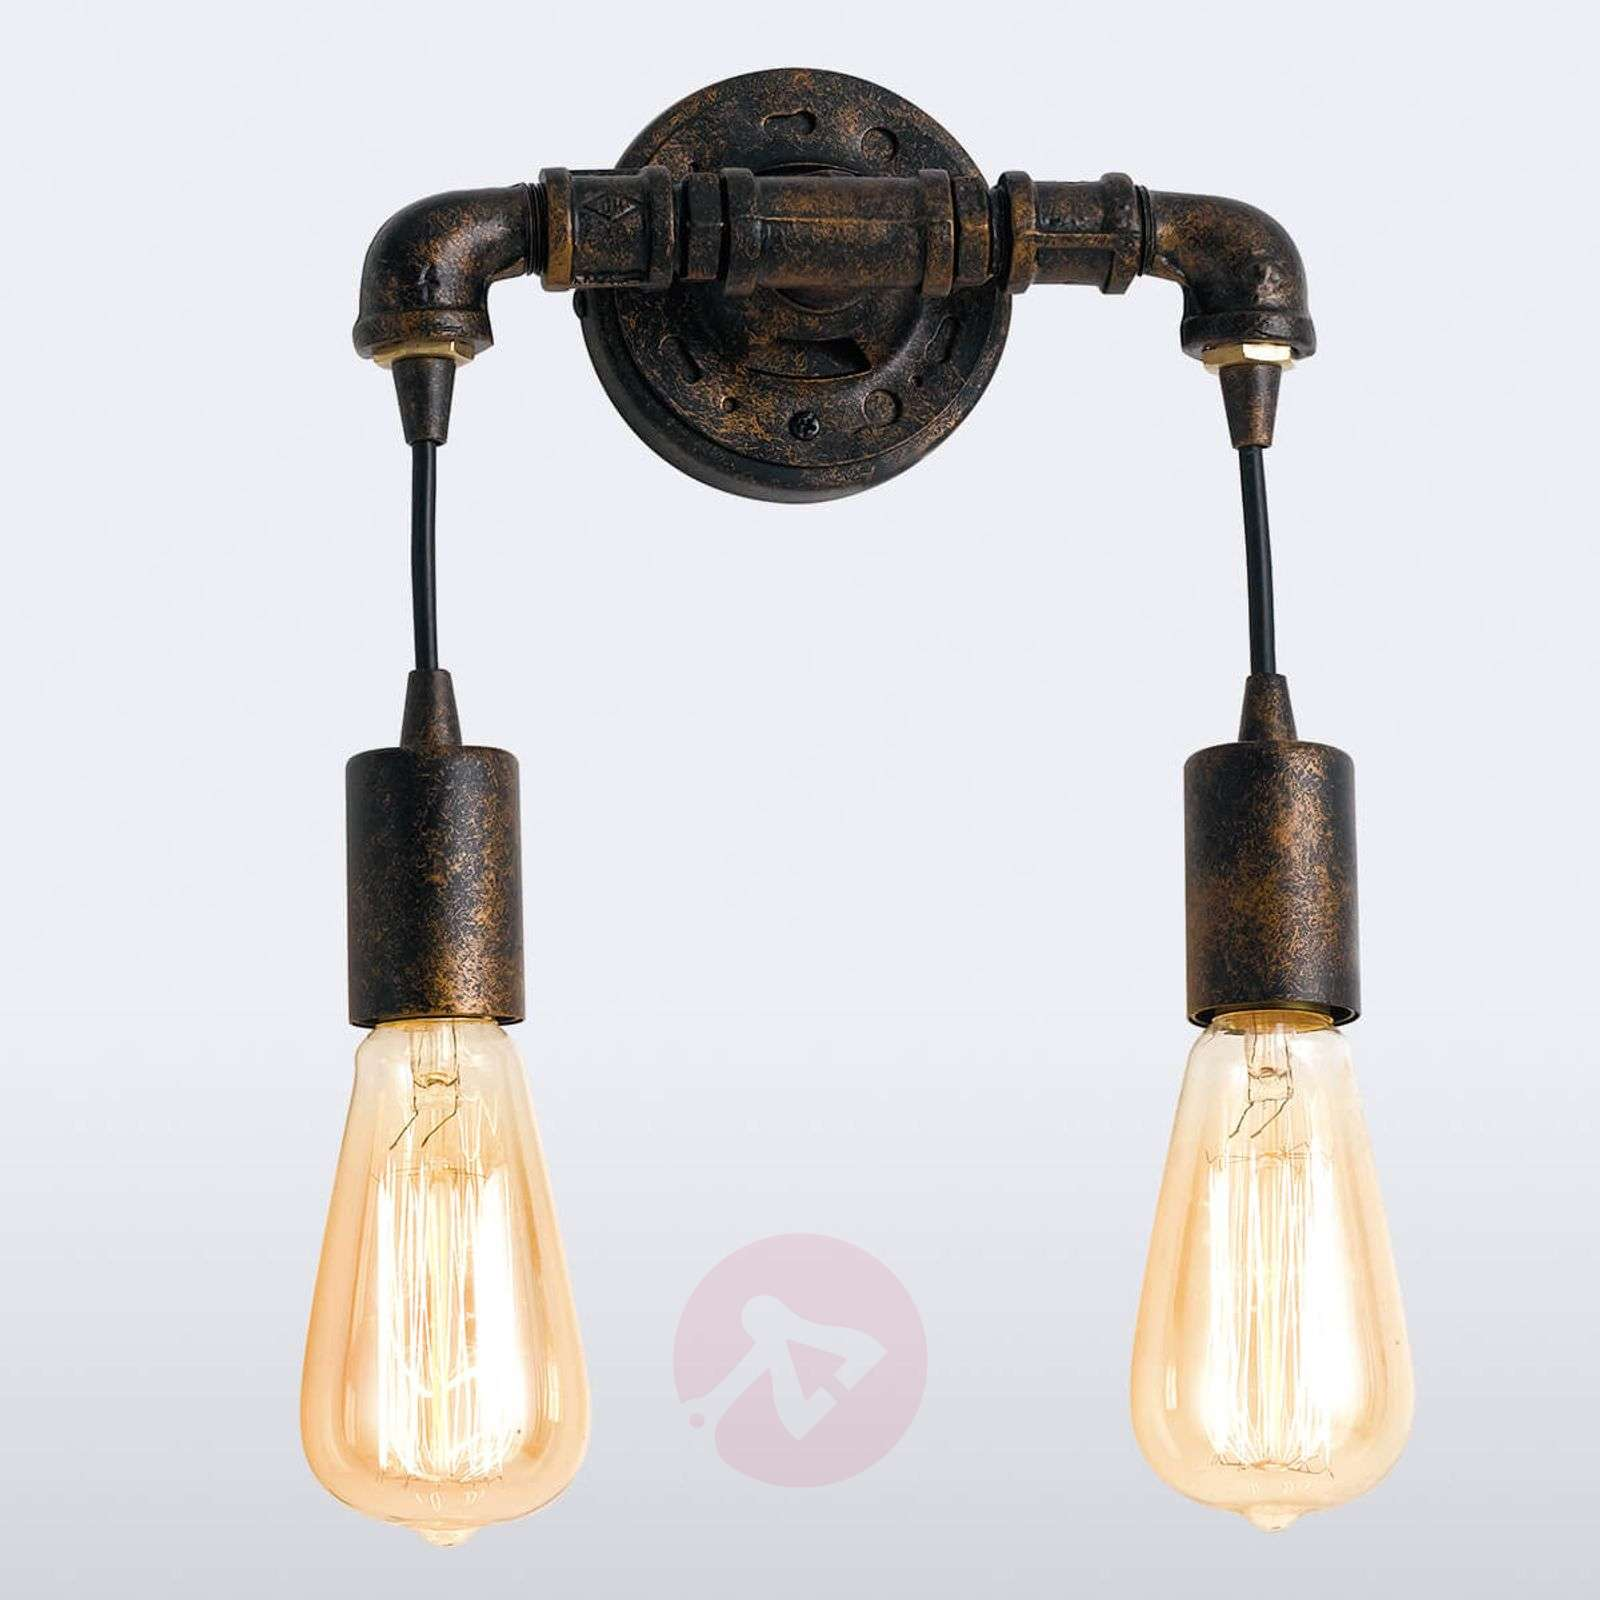 Industrial wall light Amarcord with rust surface-3006654-01